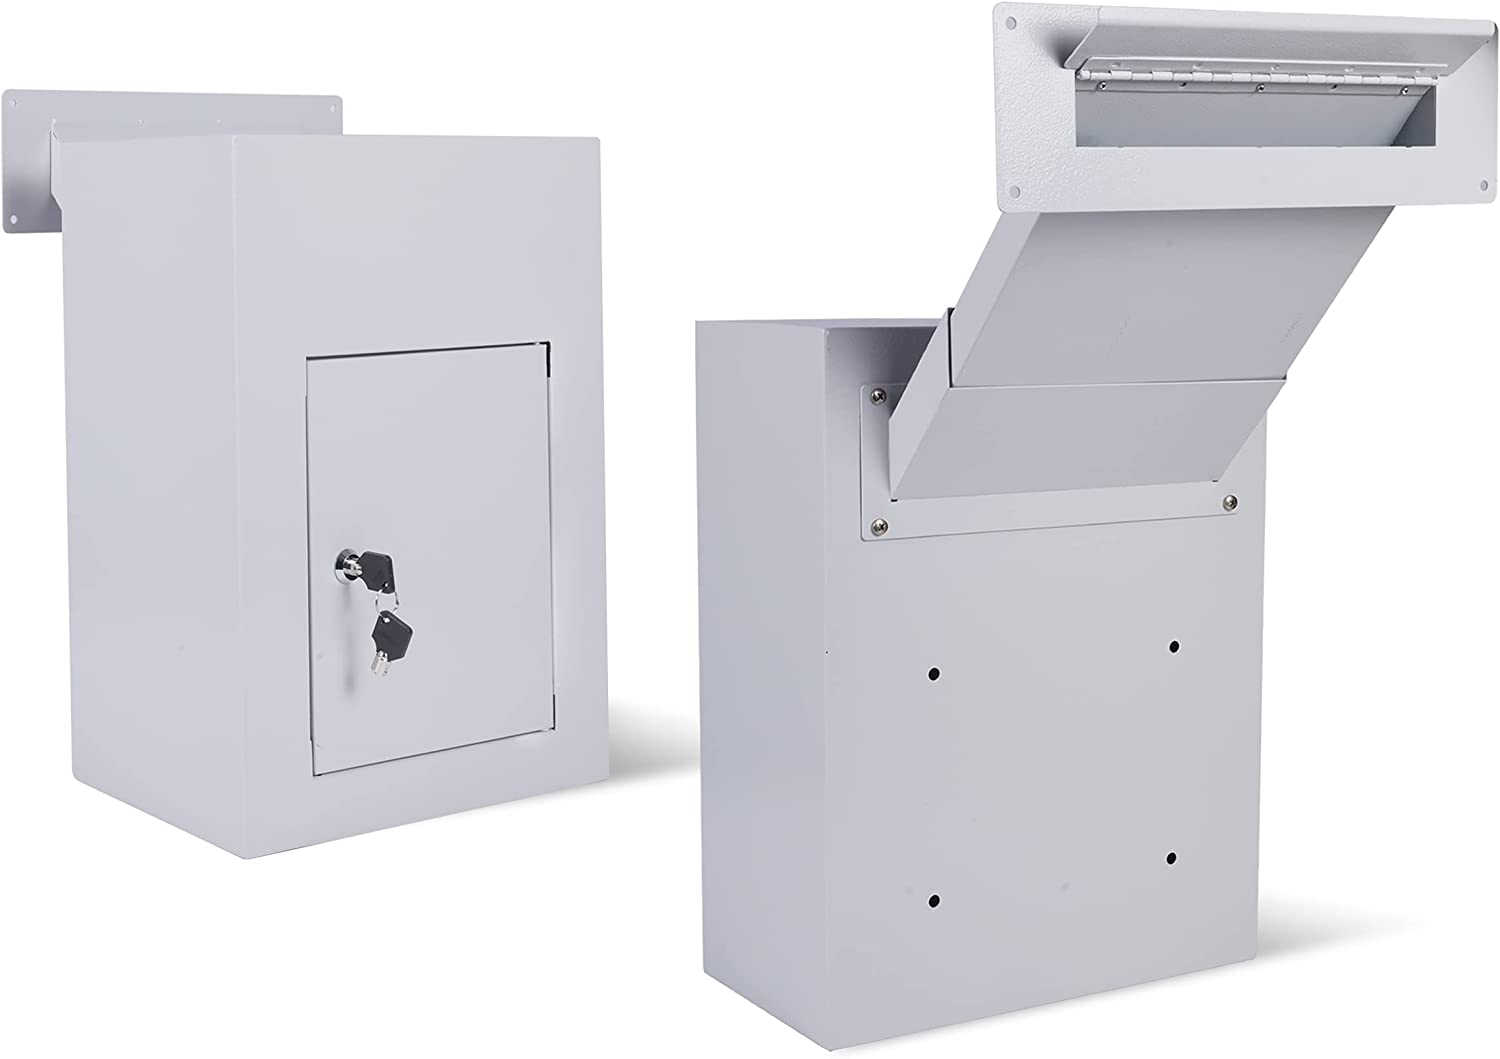 Drop Slot Safes Dropbox Key Drop Box Mail Slots for Walls Mail Catcher with Safe Anti Theft Lock Adjustable Chute Easy to Deposit Wall Mounted Mailbox for Cash Money Documents Home Office Color Grey